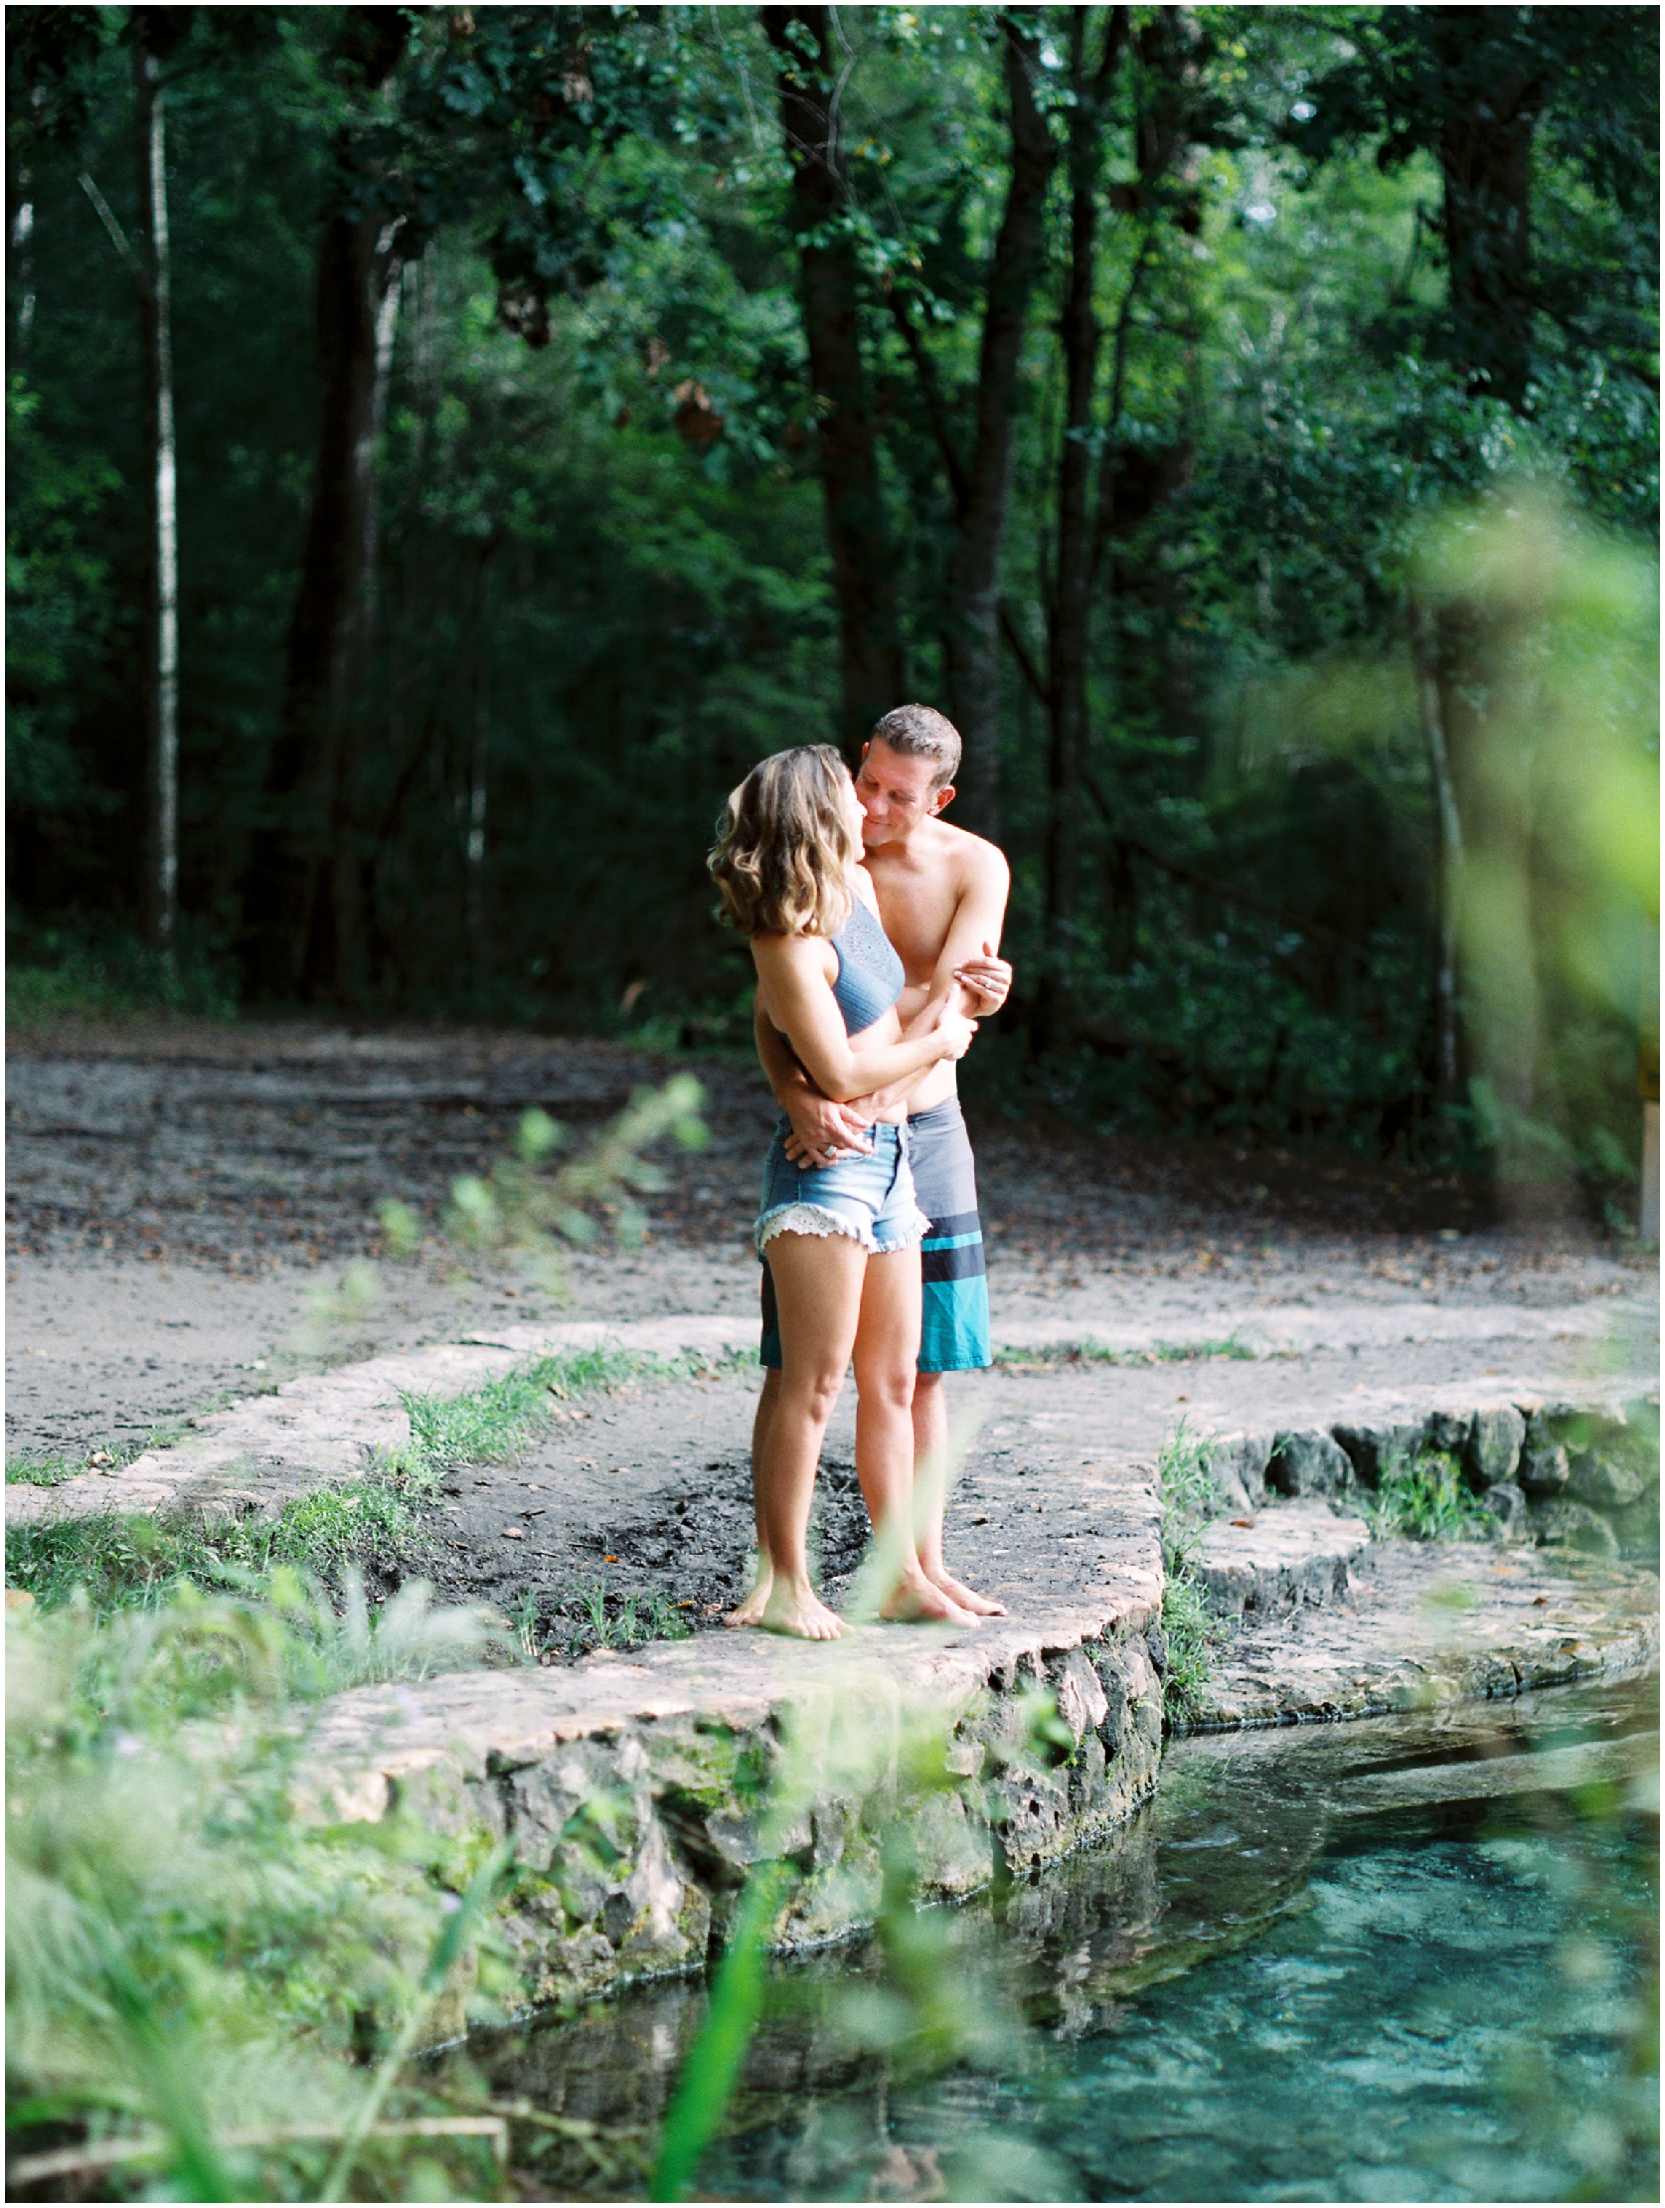 Lisa Silva Photography -Couples Session at the Ichetucknee River- Jacksonville and North East Florida Fine Art Film Photographer_10.jpg